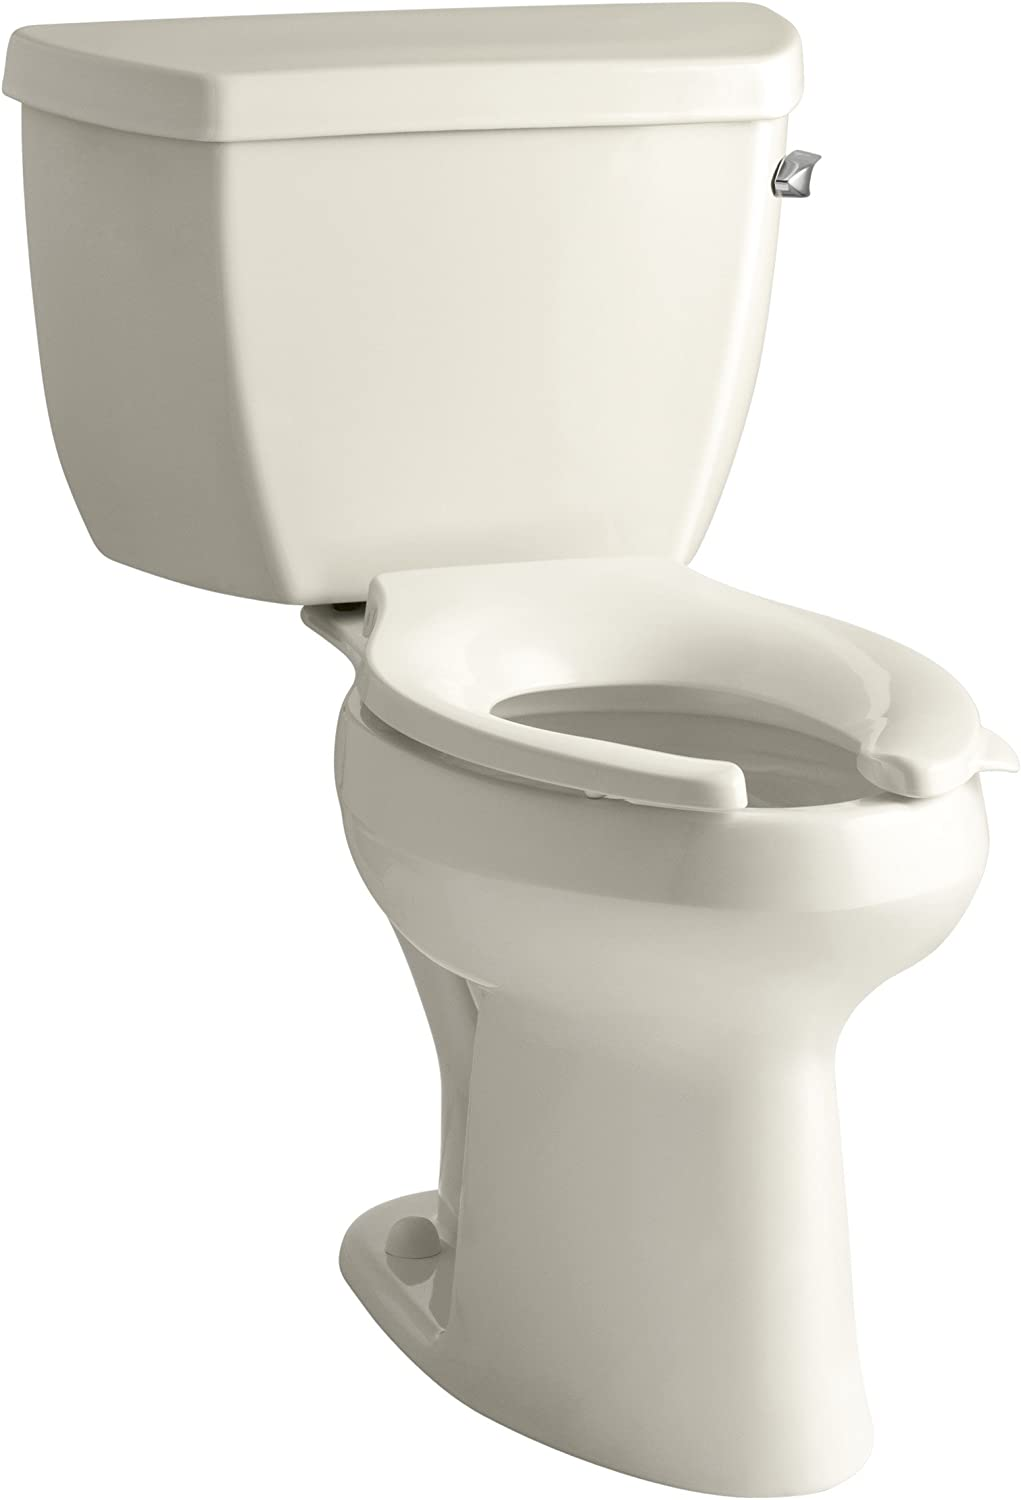 Almond Kohler K-3493-RA-47 Highline Classic Pressure Lite Comfort Height Elongated 1.4 gpf Toilet with Right-Hand Trip Lever Less Seat